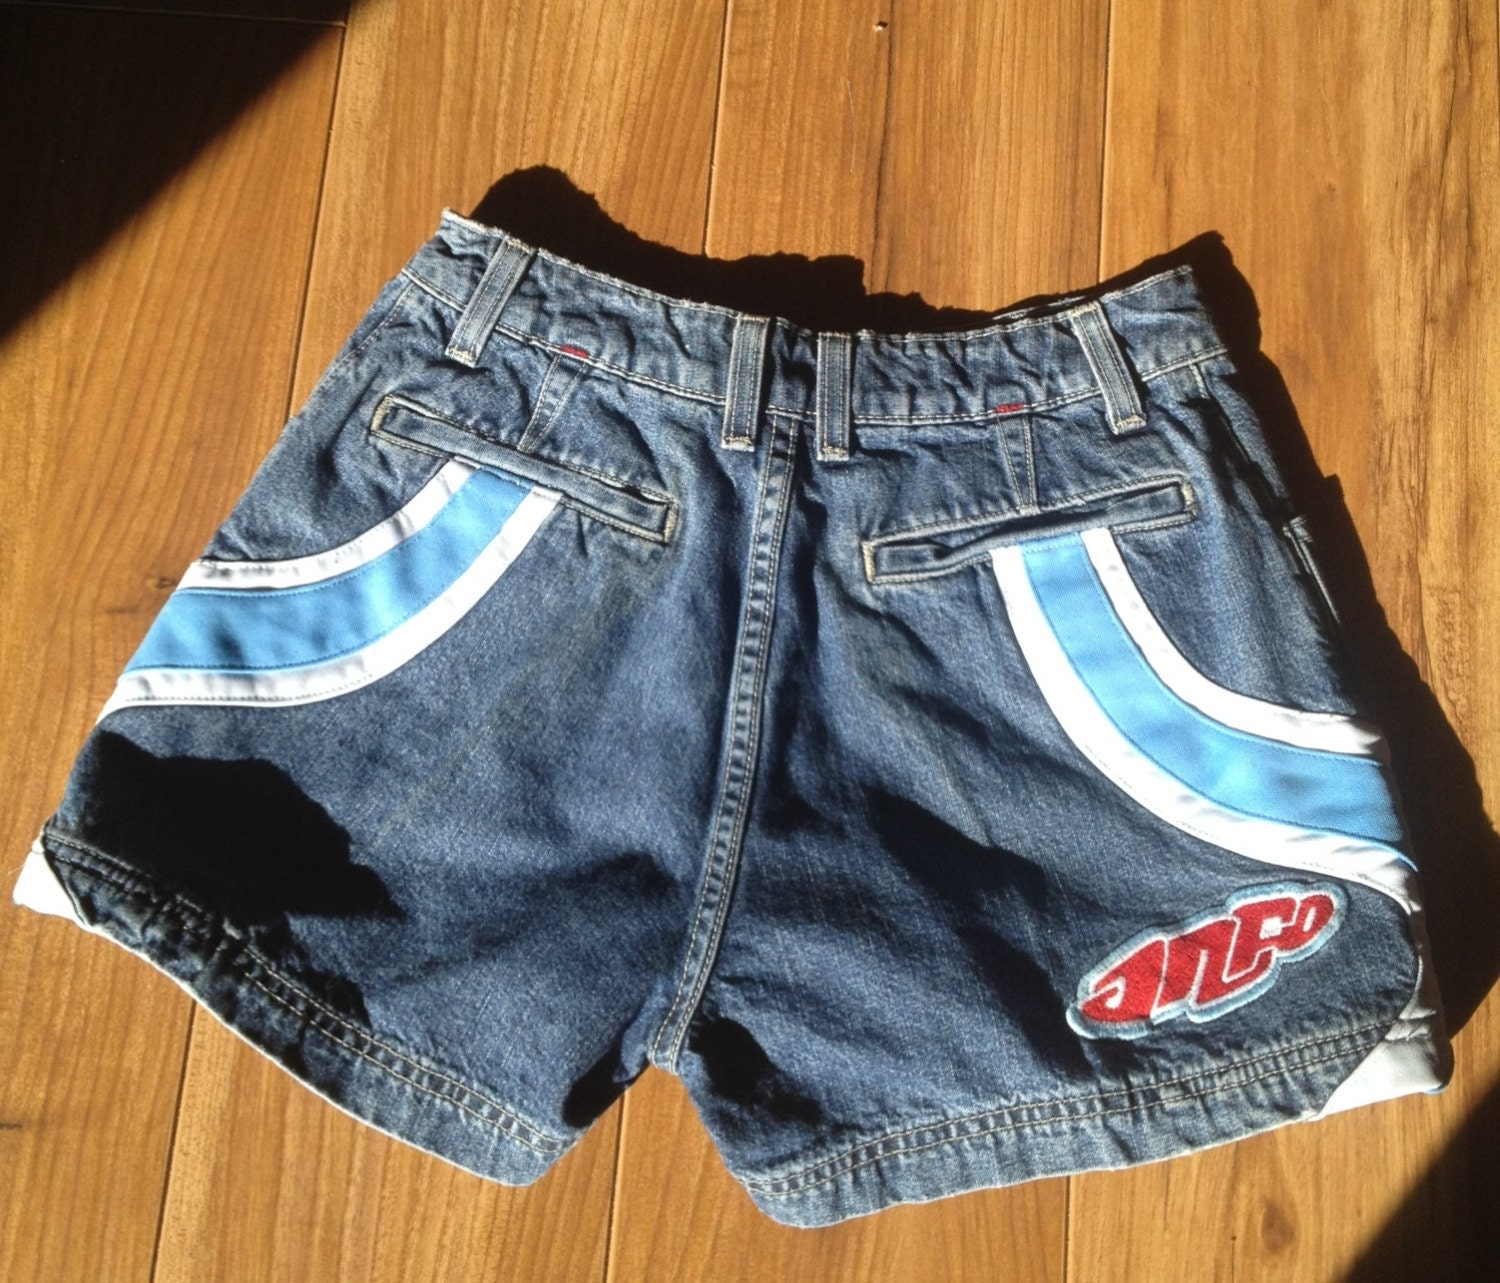 Jnco Jeans Denim Shorts with Wavy Blue and White Detailing